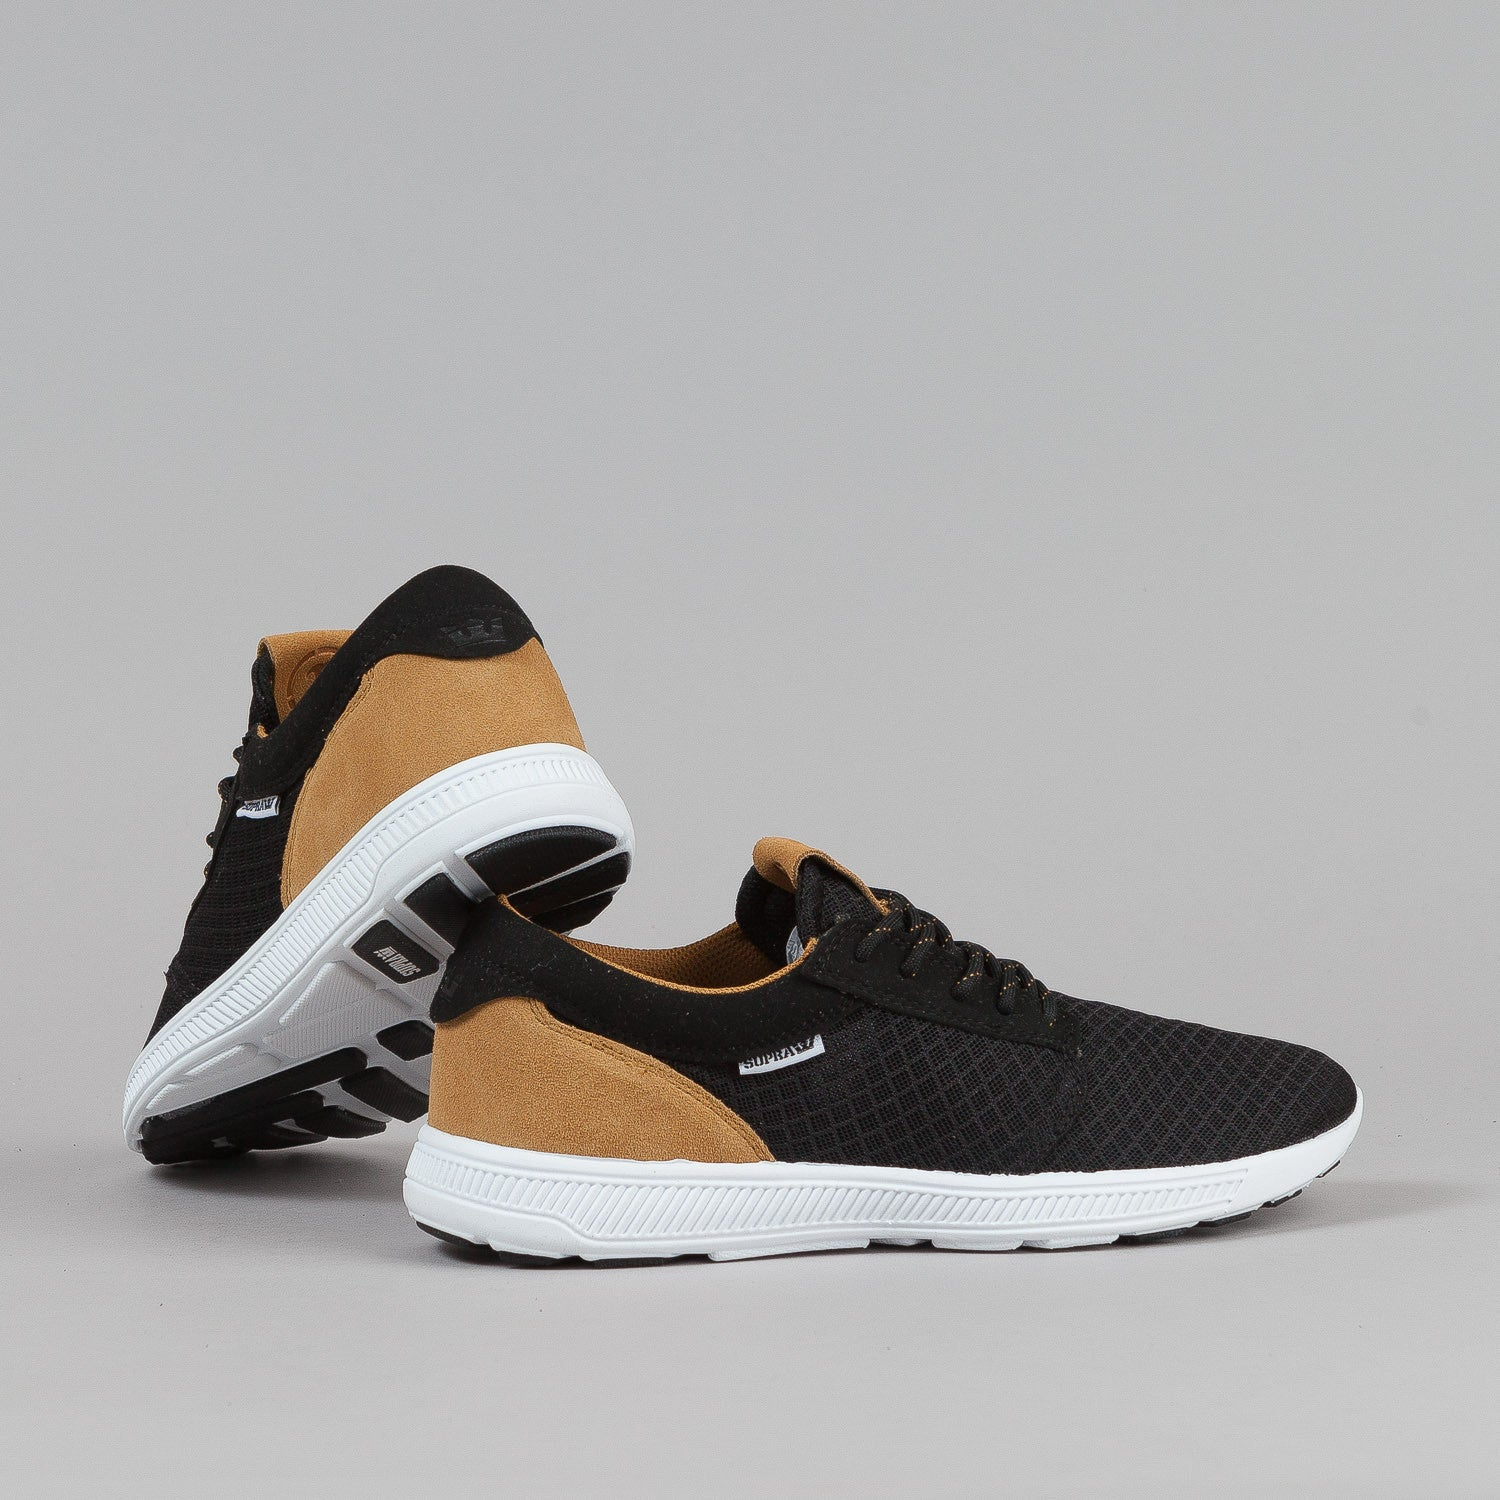 Supra Hammer Run Shoes - Black / Brown / White